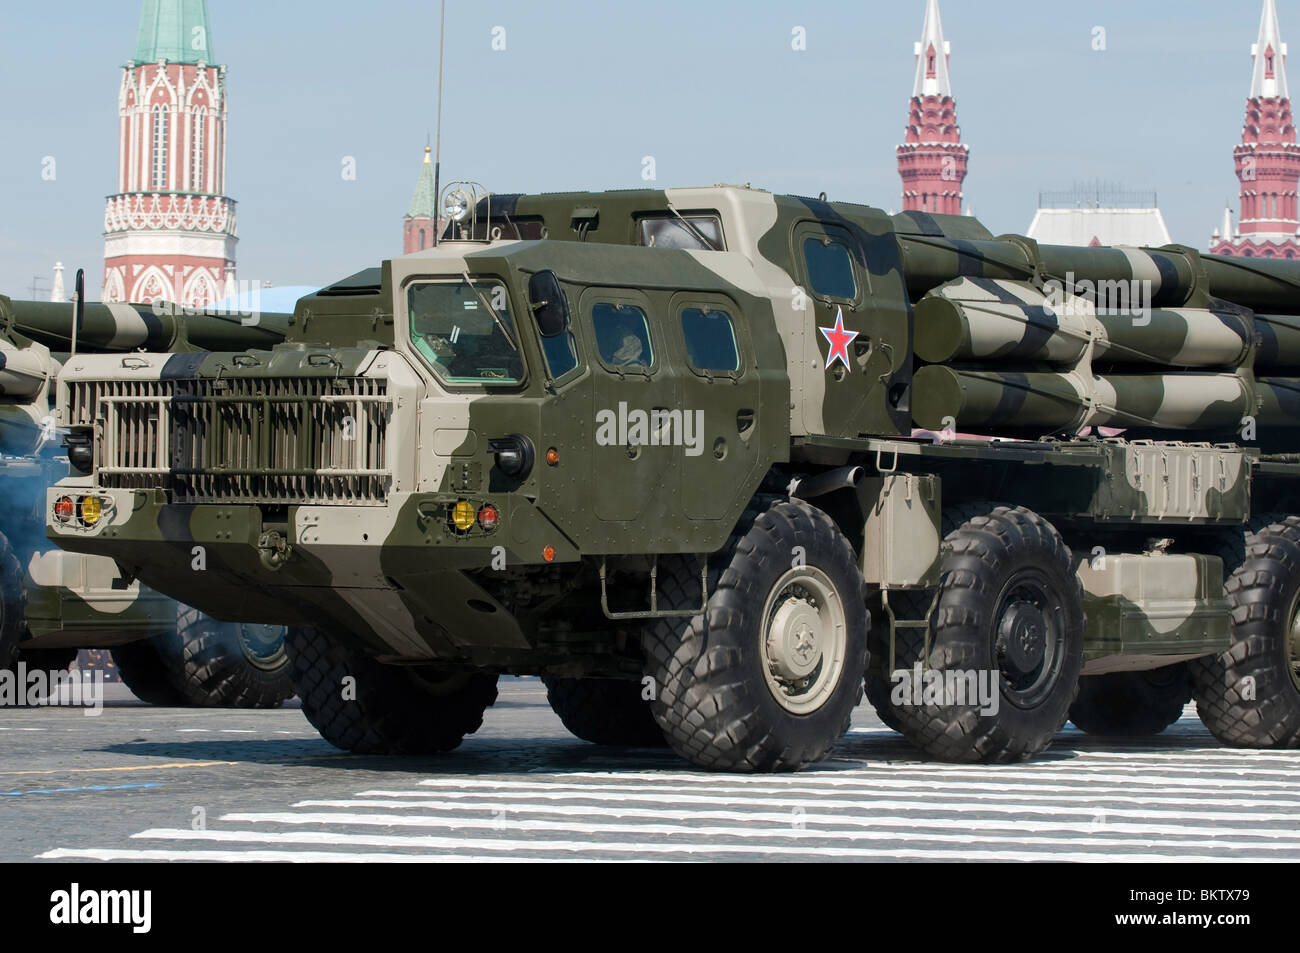 Russian multiple rocket launcher BM 30 Smerch (Tornado) march along the Red Square Moscow Victory Parade of 2010 - Stock Image